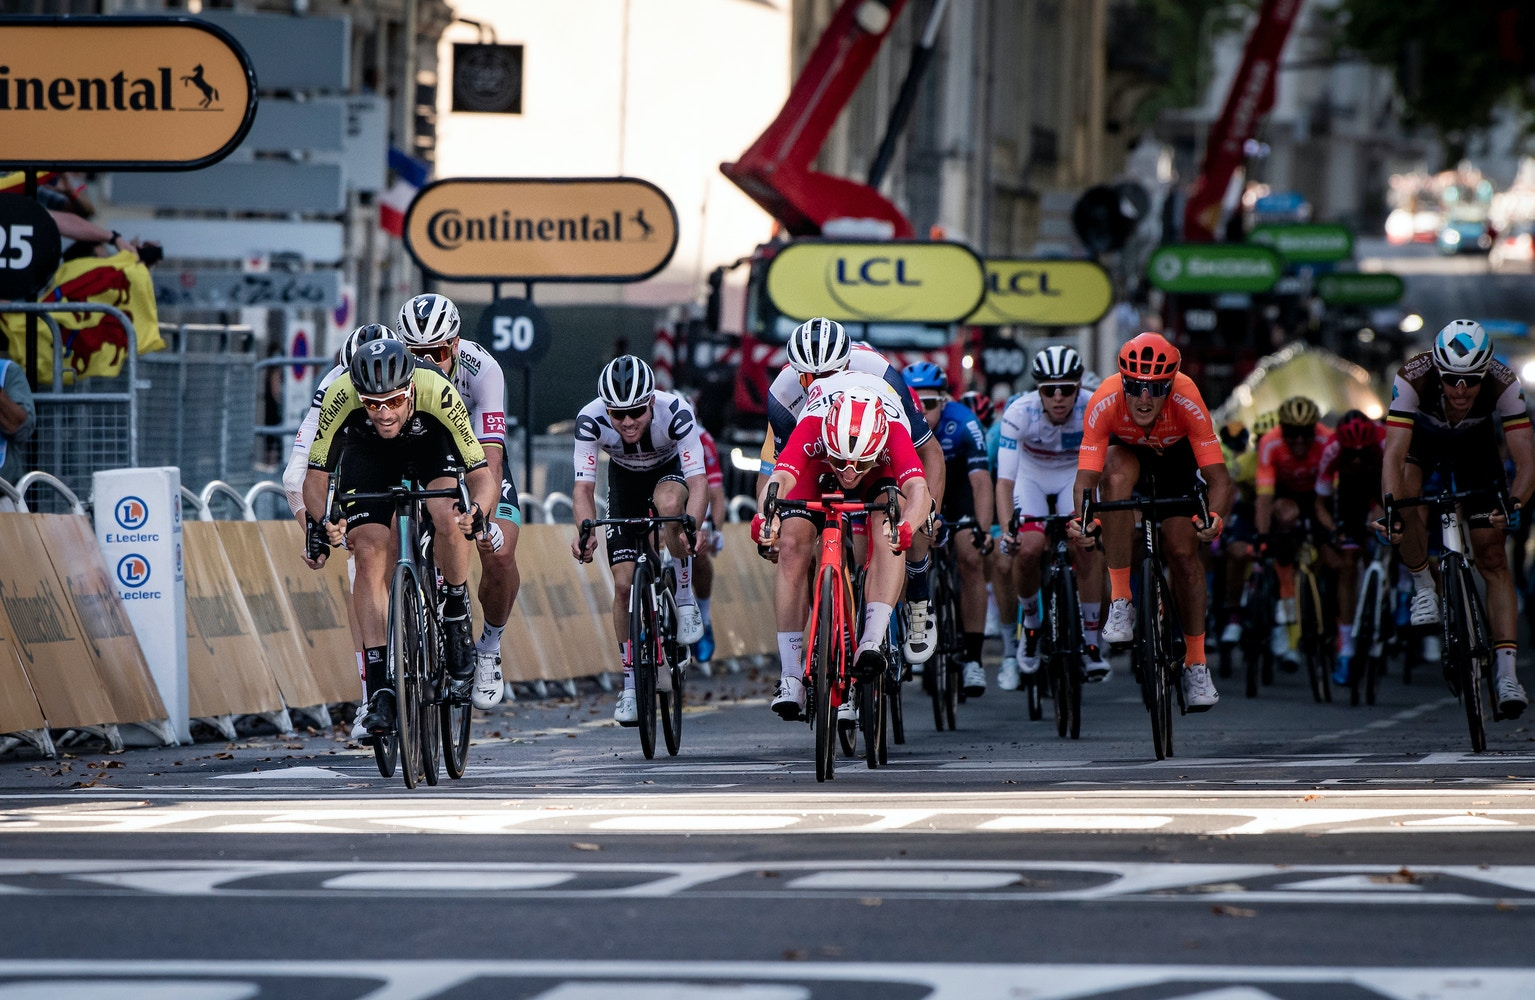 Tour de France 2020: Stage 14 Race Recap